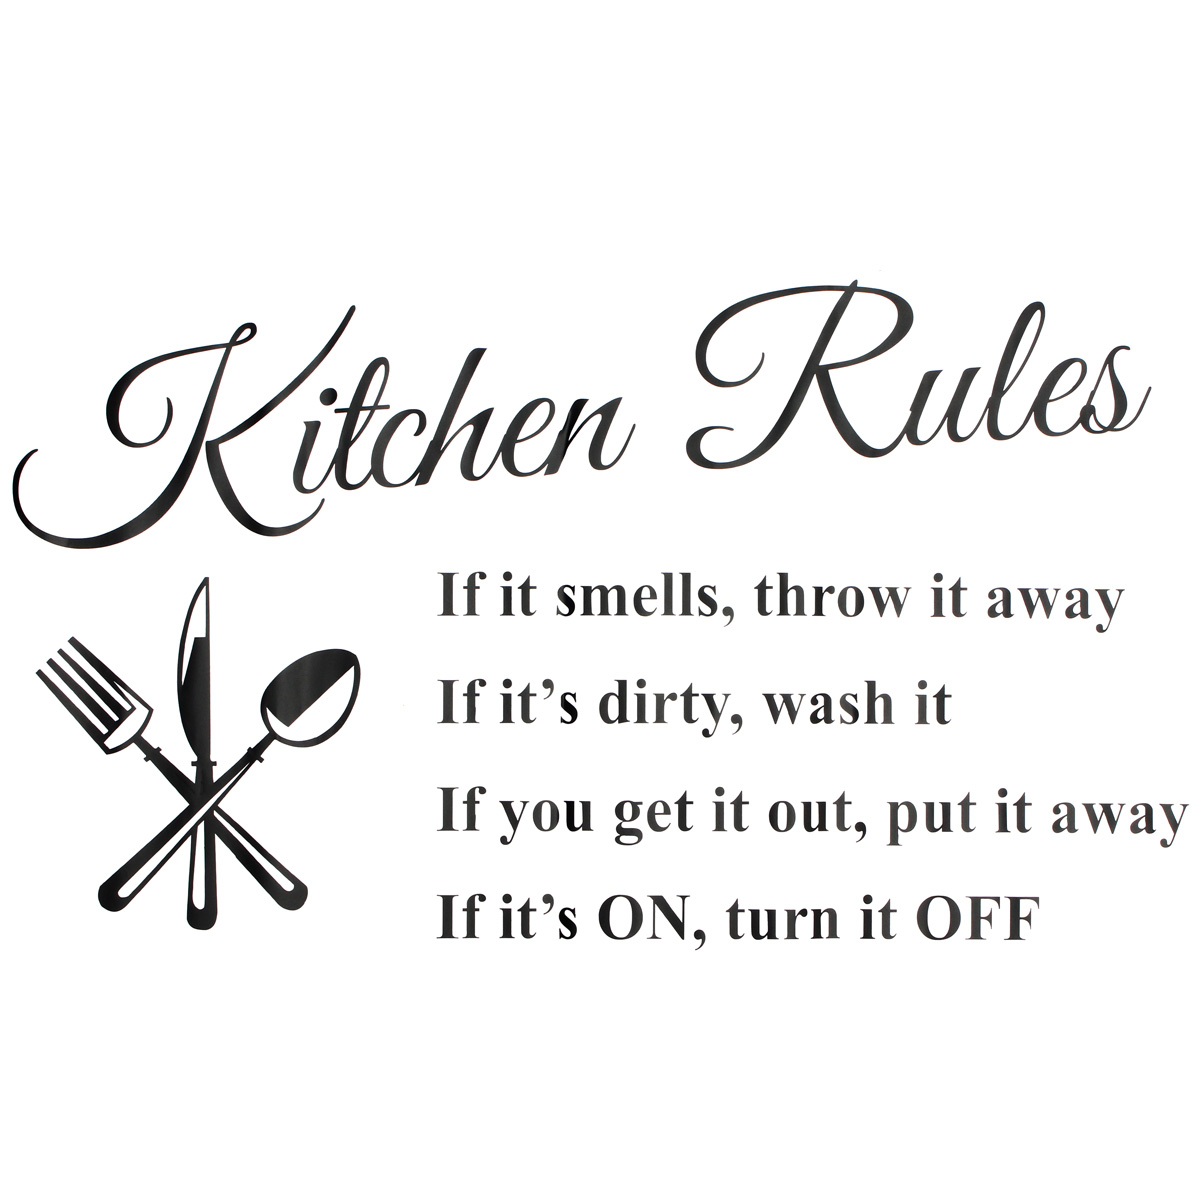 Removable Kitchen Rules Words Wall Stickers Decal Home Decor